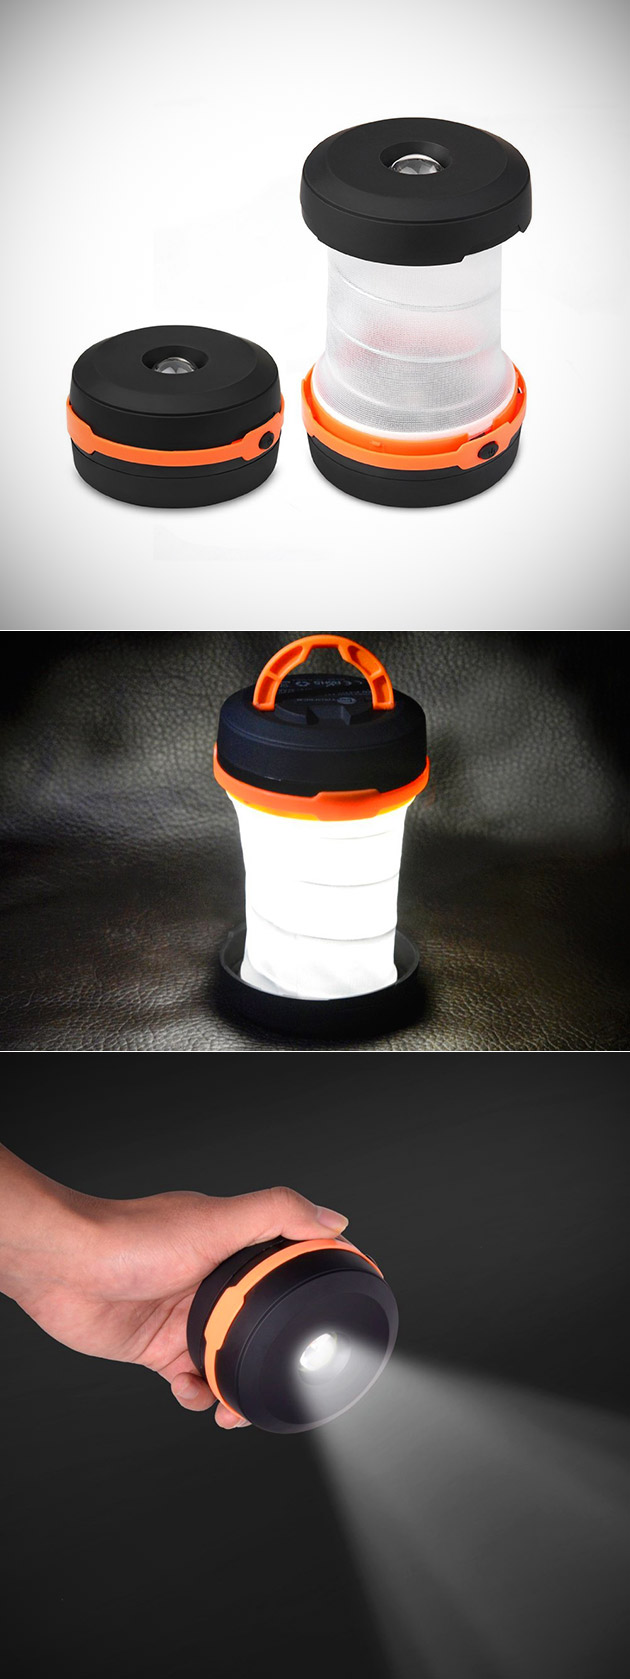 TaoTronics Collapsible Lantern